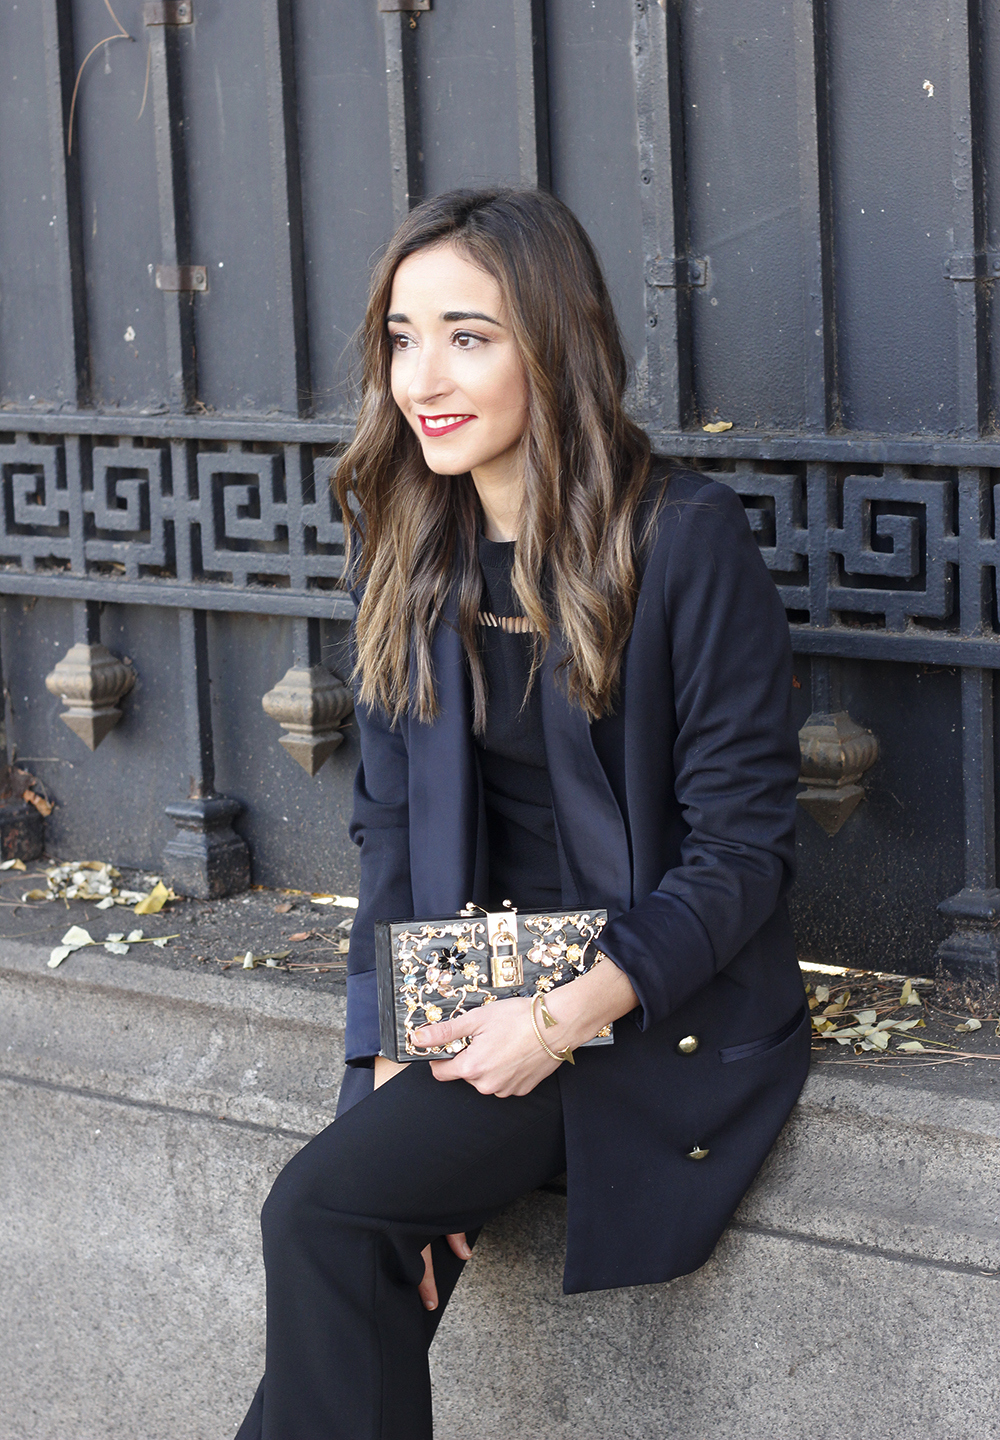 Black trousers with a ruffle on the bottom uterqüe bag accessories black heels blazer outfit style fashion08